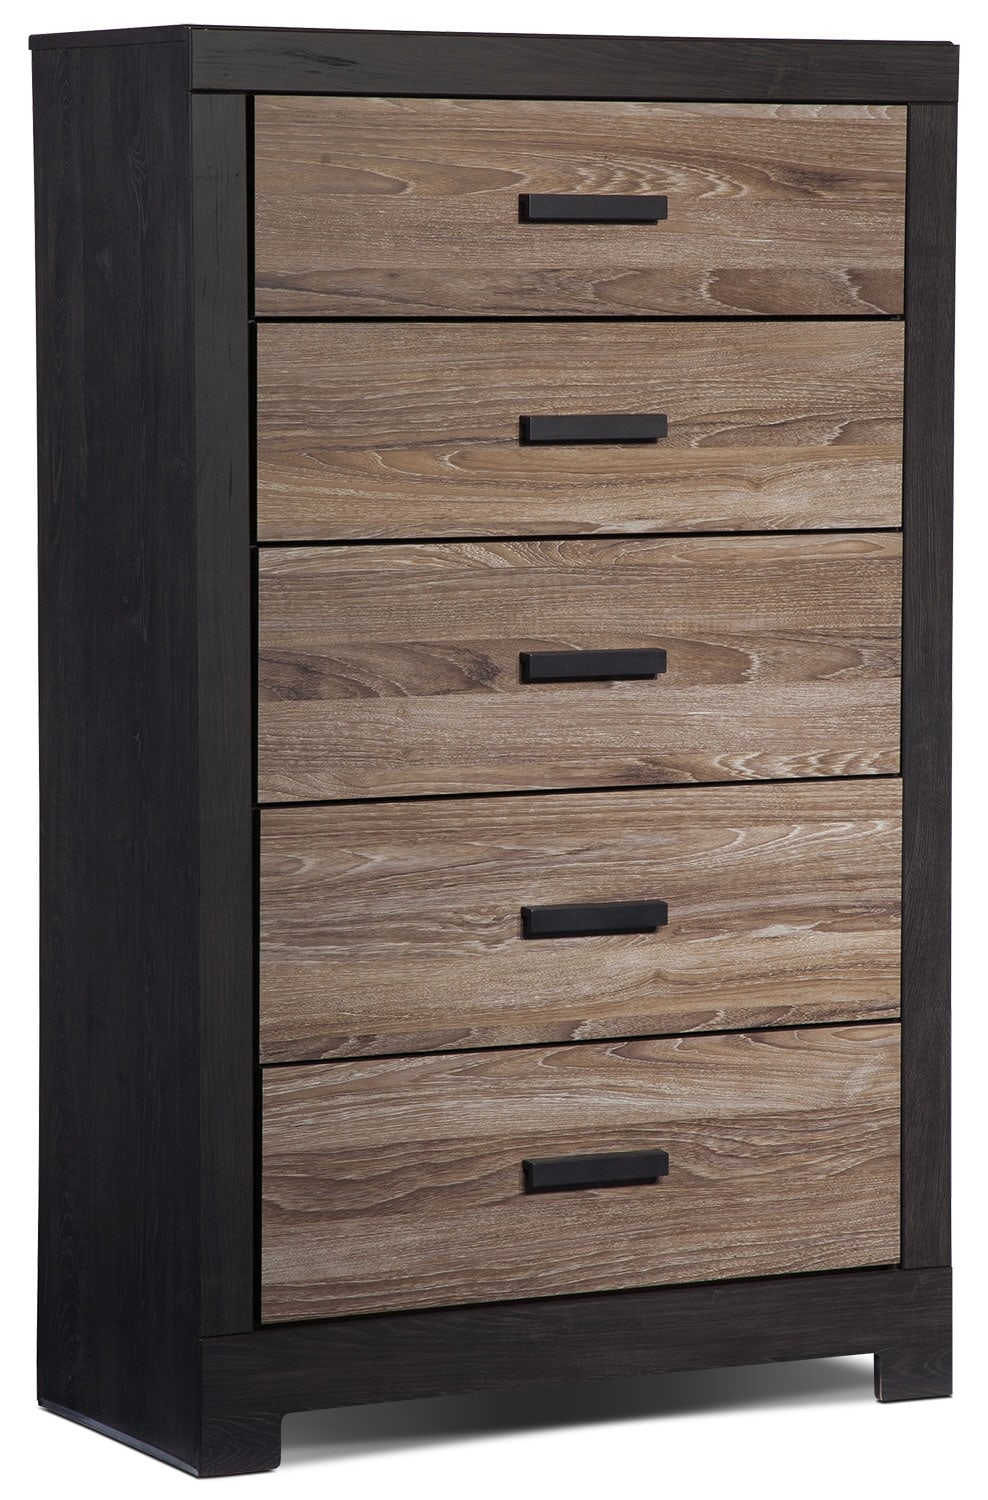 Bedroom Furniture - Harlinton Chest